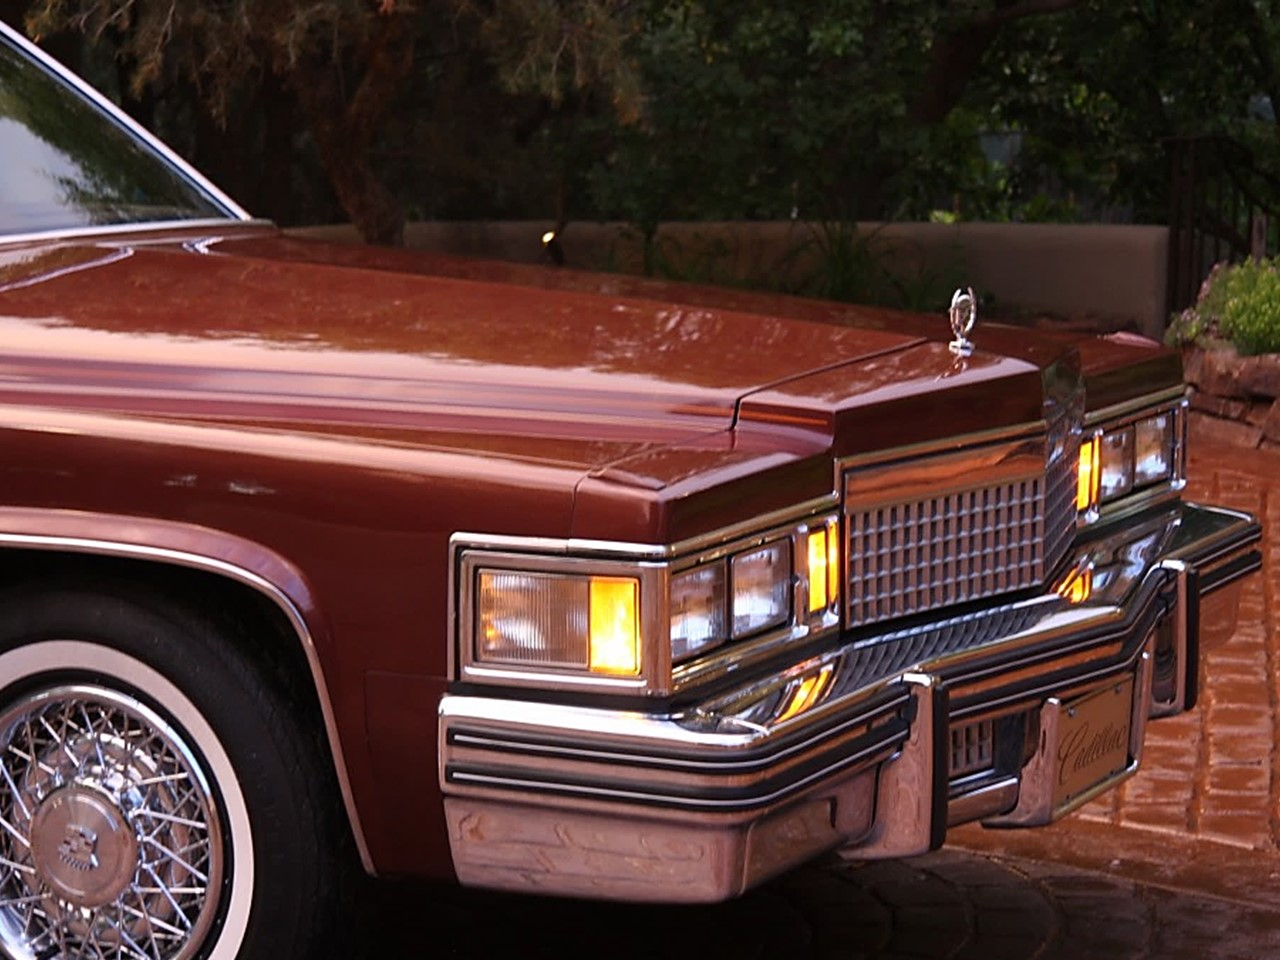 2018 cadillac fleetwood brougham. exellent cadillac the 1979 cadillac fleetwood brougham wears its trim new design very well  its precision size combined with an efficient 70 litre v8 engine makes it a  on 2018 cadillac fleetwood brougham c